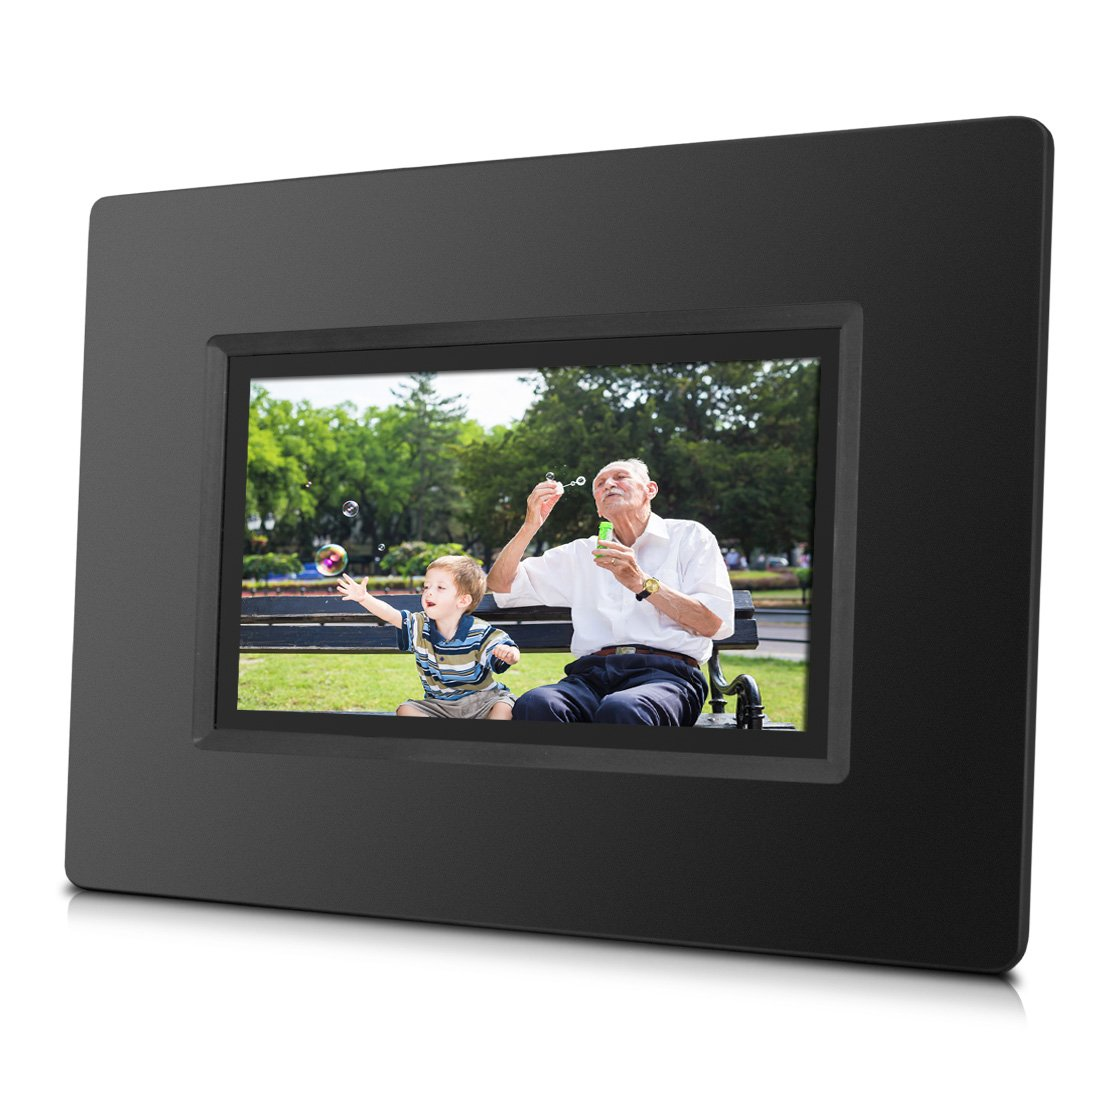 Amazon sungale cpf716 7 smart wi fi cloud digital photo amazon sungale cpf716 7 smart wi fi cloud digital photo frame with touch screen operation built in battery free cloud storage real time photos movie jeuxipadfo Gallery